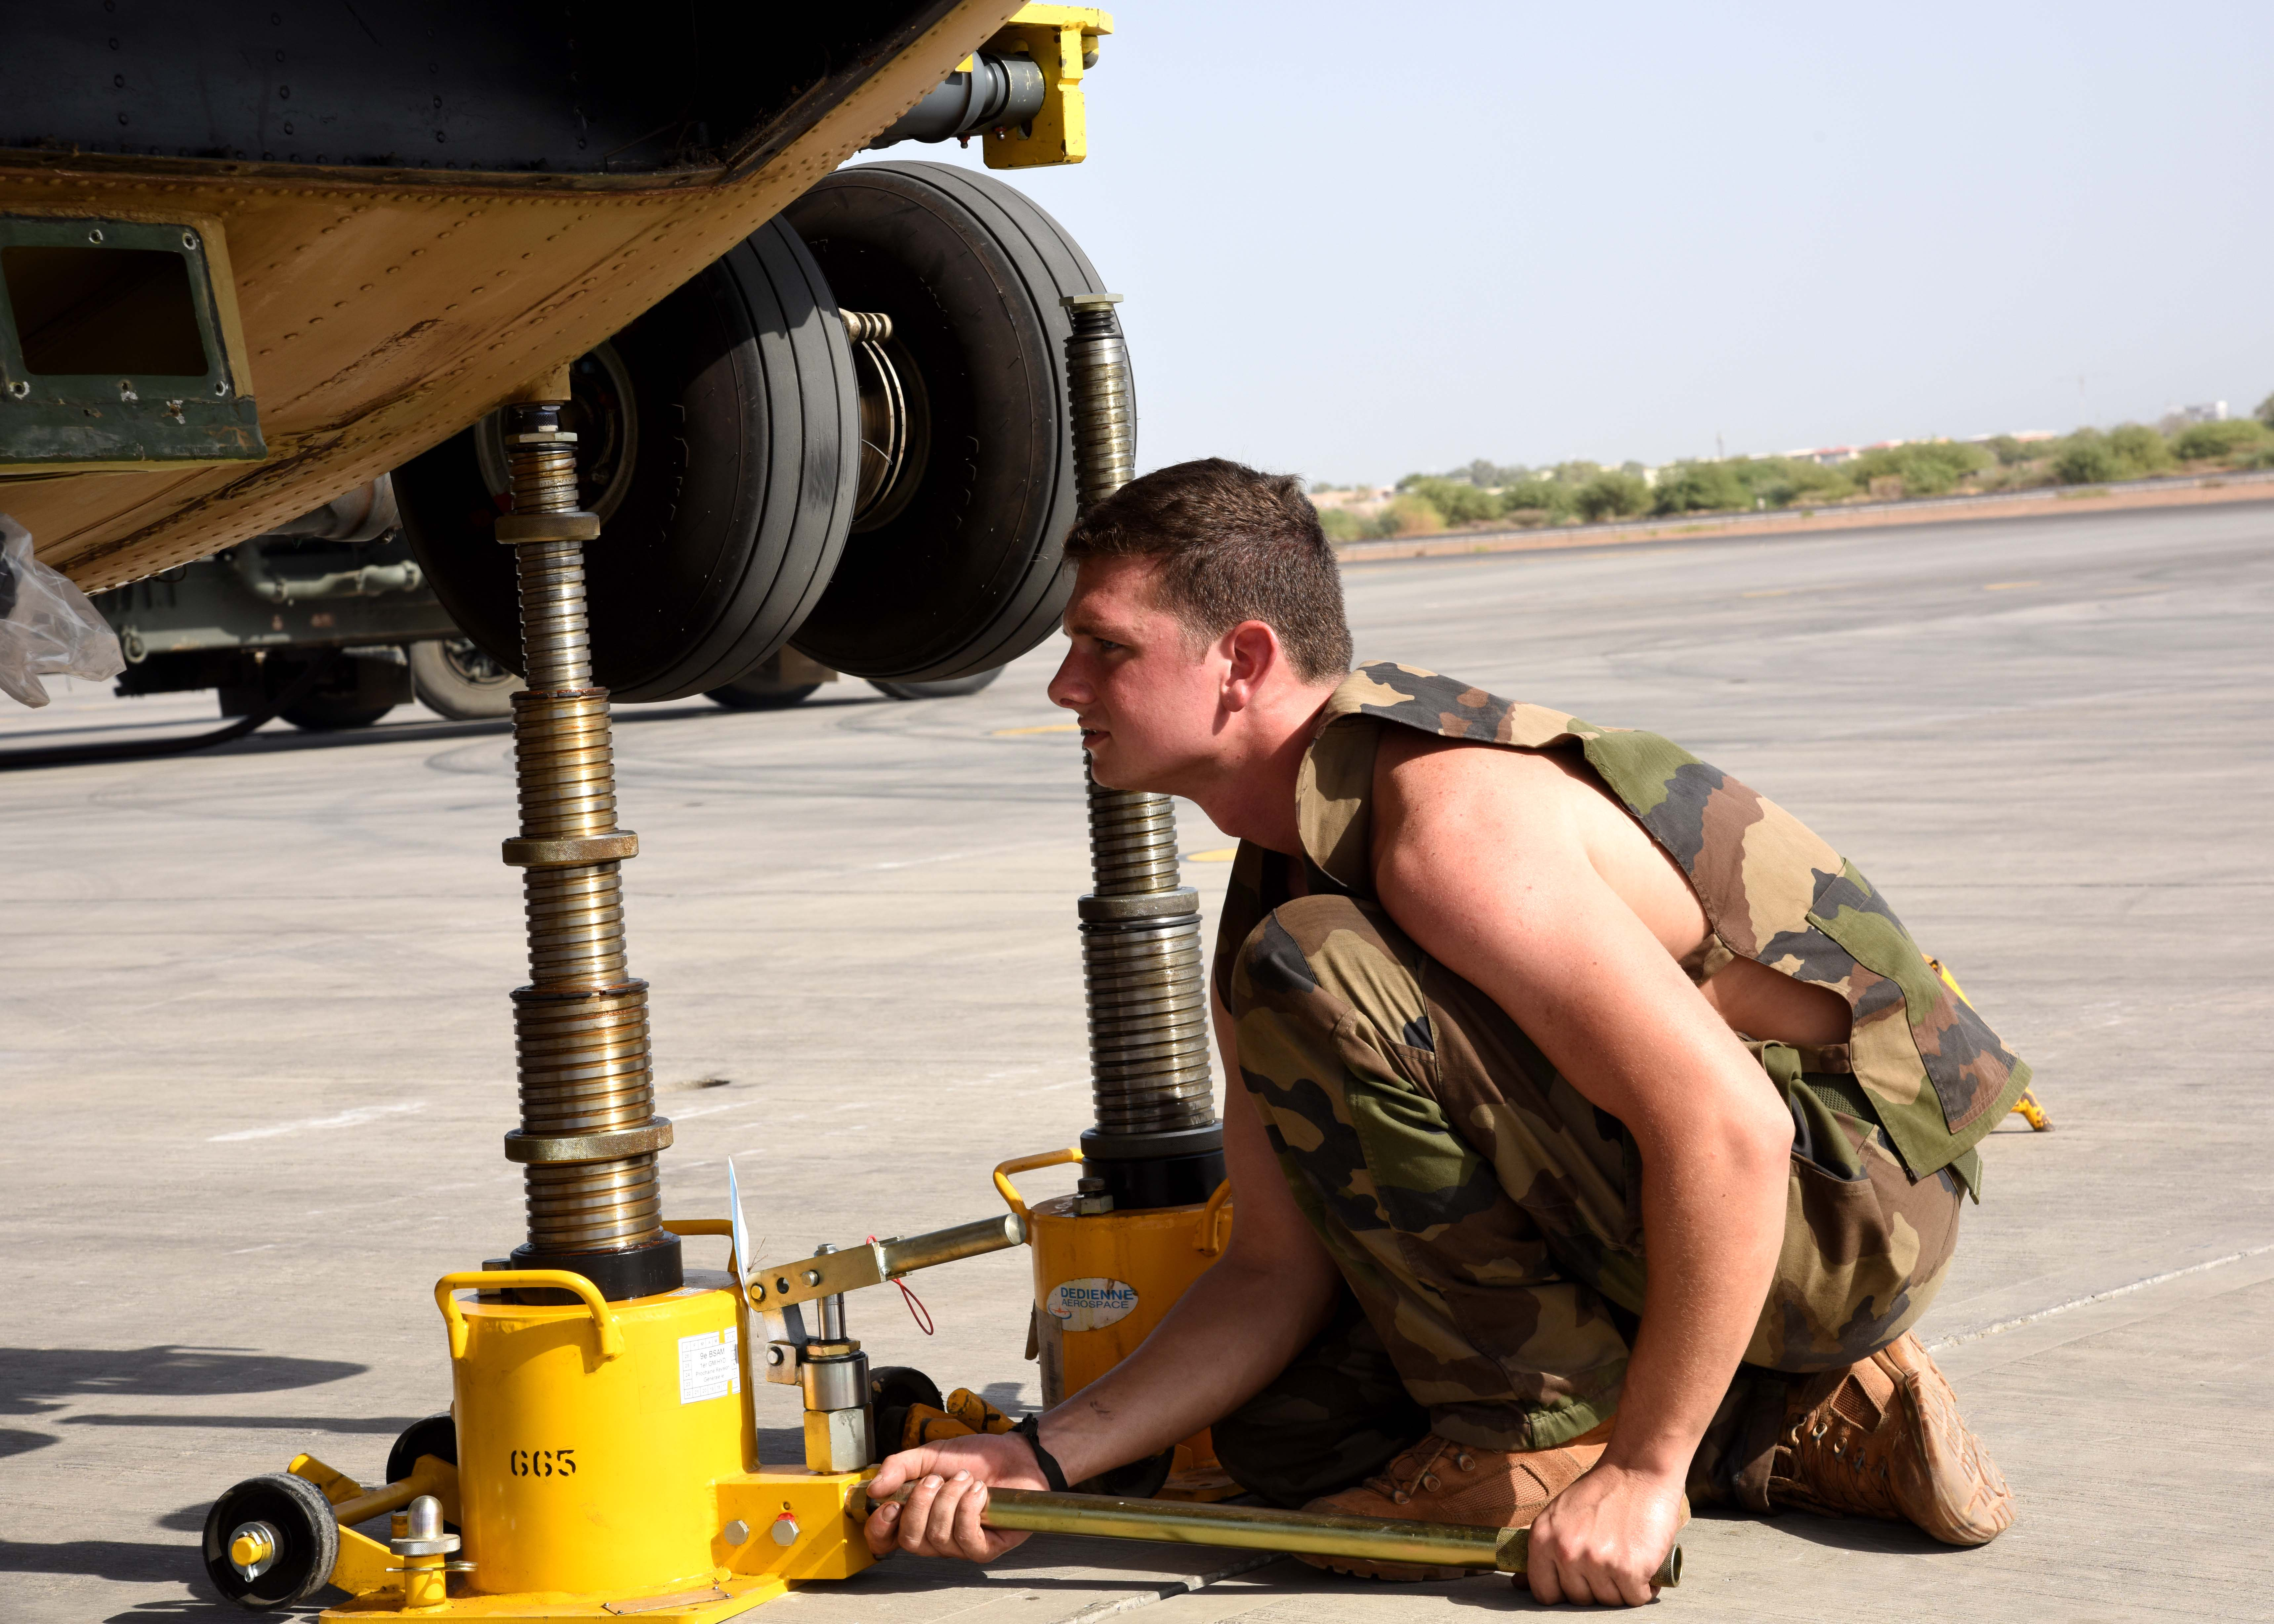 150823-N-DJ346-008 CAMP LEMONNIER, Djibouti (August 23, 2015) French Army crew member  makes wheel adjustments. French and U.S. service members prepare to transport two French Puma Helicopters and associated Passengers & Cargo to N'Djamena aboard a U.S. Air Force C-17 Globemaster. The helicopters support French operations at the intersecting borders of Libya, Chad and Niger deterring weapons and drug smuggling, and jihadist regularly crossing between nations. This is the first time France has received support from U.S. Forces in Djibouti for any mission outside of East Africa. (U.S. Navy photo by Chief Mass Communication Specialist Donald W. Randall/Released)